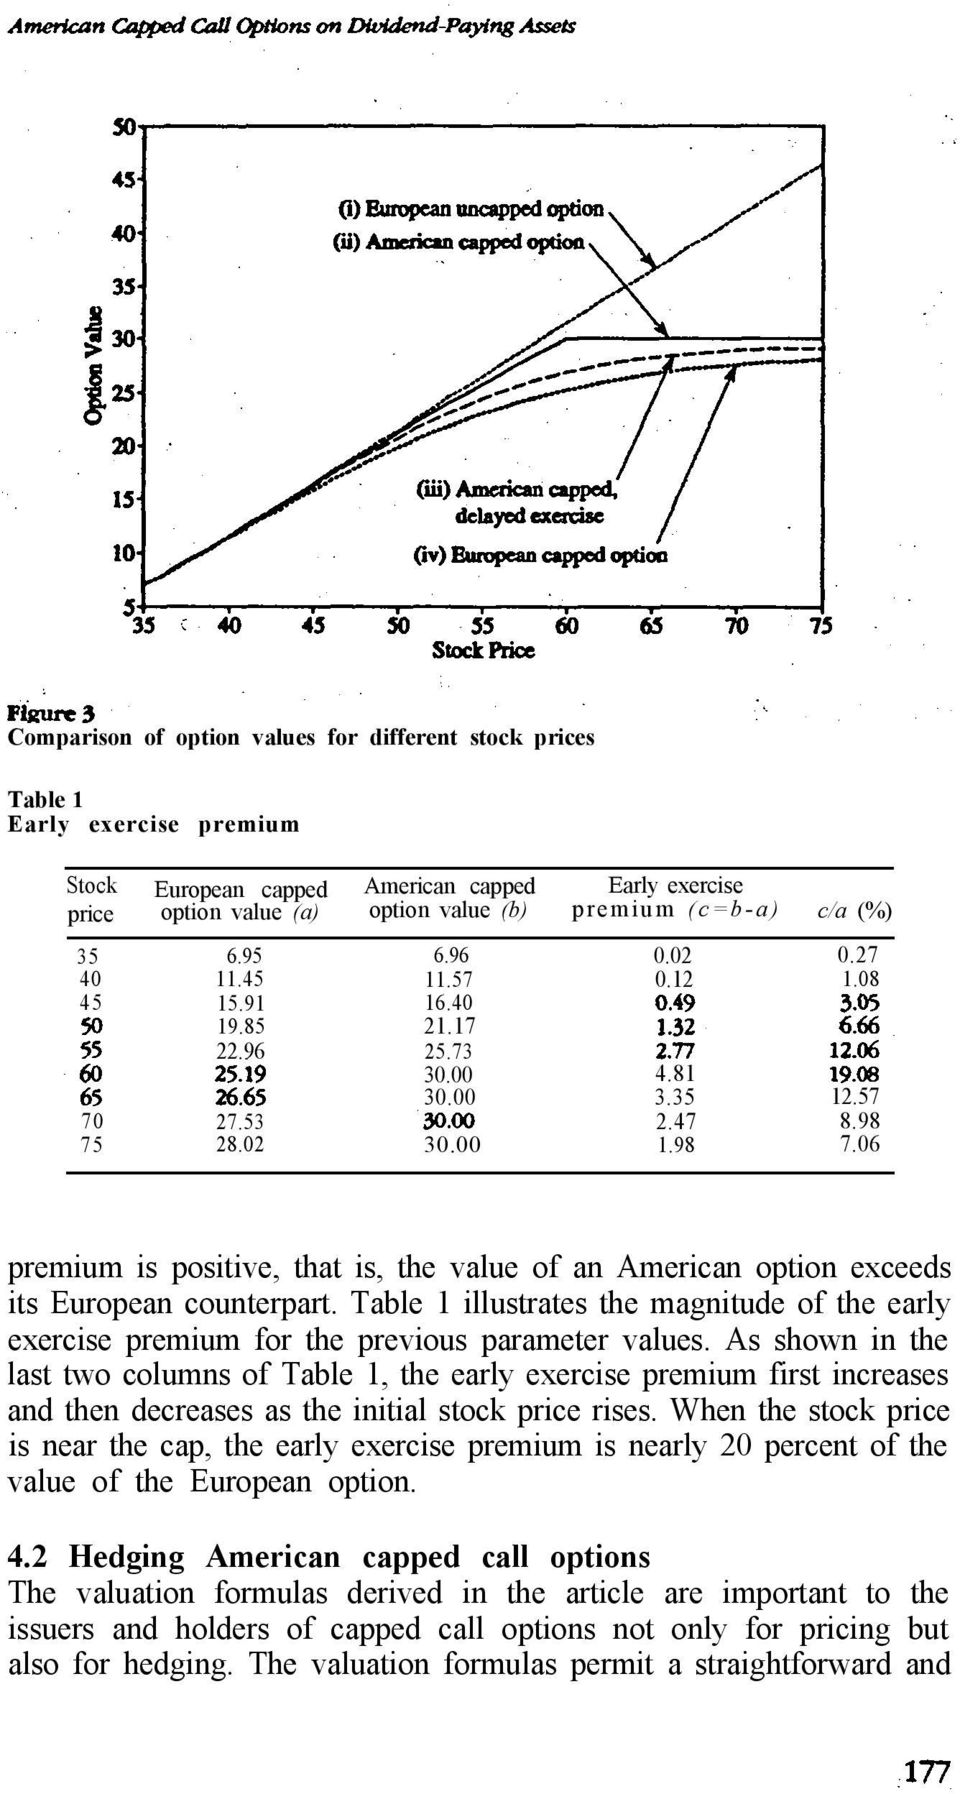 06 premium is positive, that is, the value of an American option exceeds its European counterpart. Table 1 illustrates the magnitude of the early exercise premium for the previous parameter values.